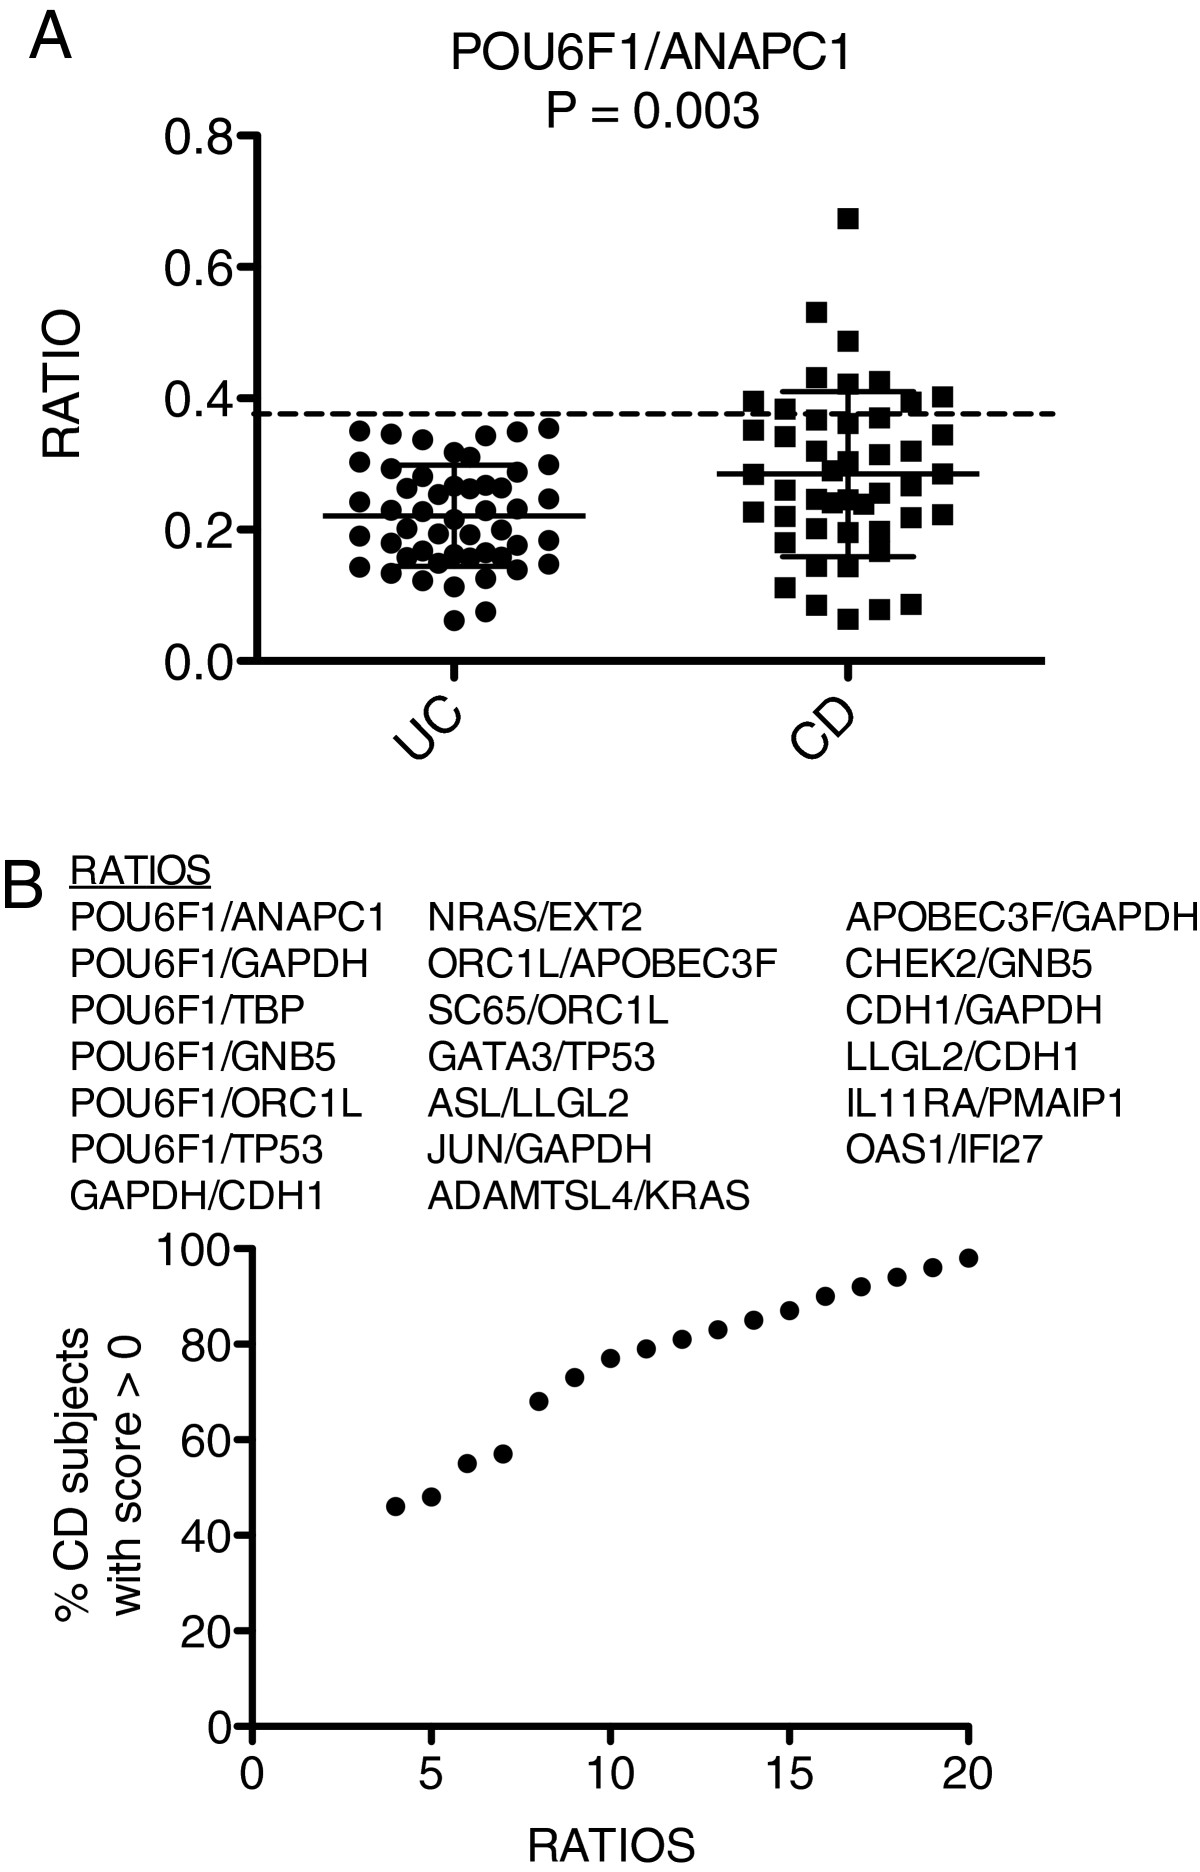 http://static-content.springer.com/image/art%3A10.1186%2F2043-9113-2-20/MediaObjects/13336_2012_Article_63_Fig4_HTML.jpg